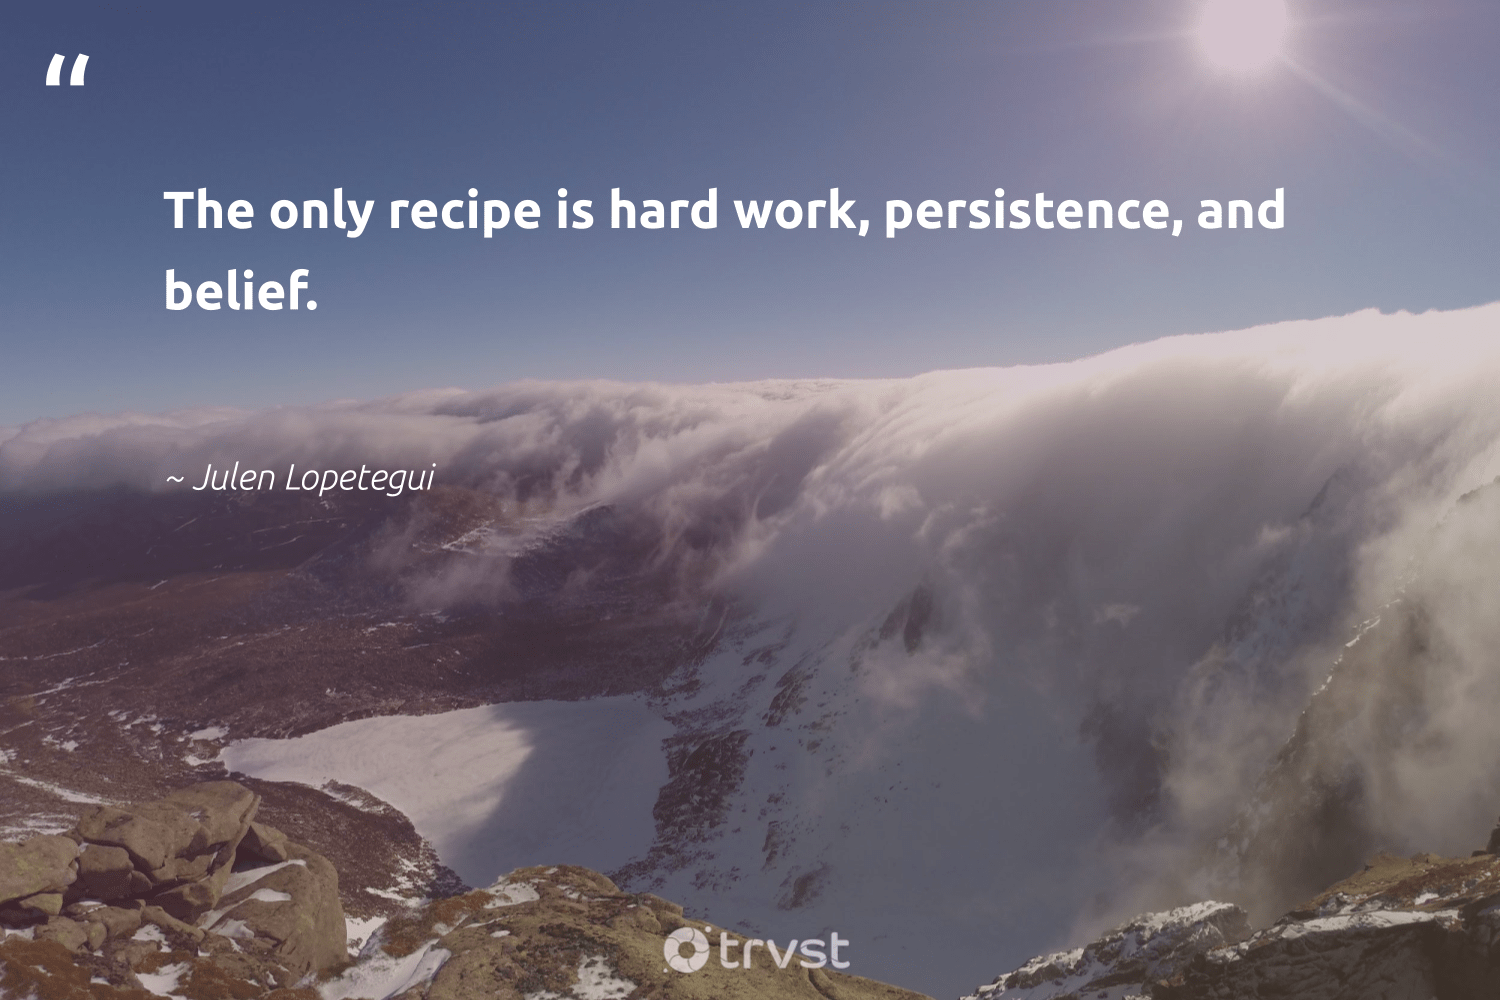 """""""The only recipe is hard work, persistence, and belief.""""  - Julen Lopetegui #trvst #quotes #begreat #bethechange #futureofwork #impact #nevergiveup #collectiveaction #softskills #dosomething #changetheworld #thinkgreen"""